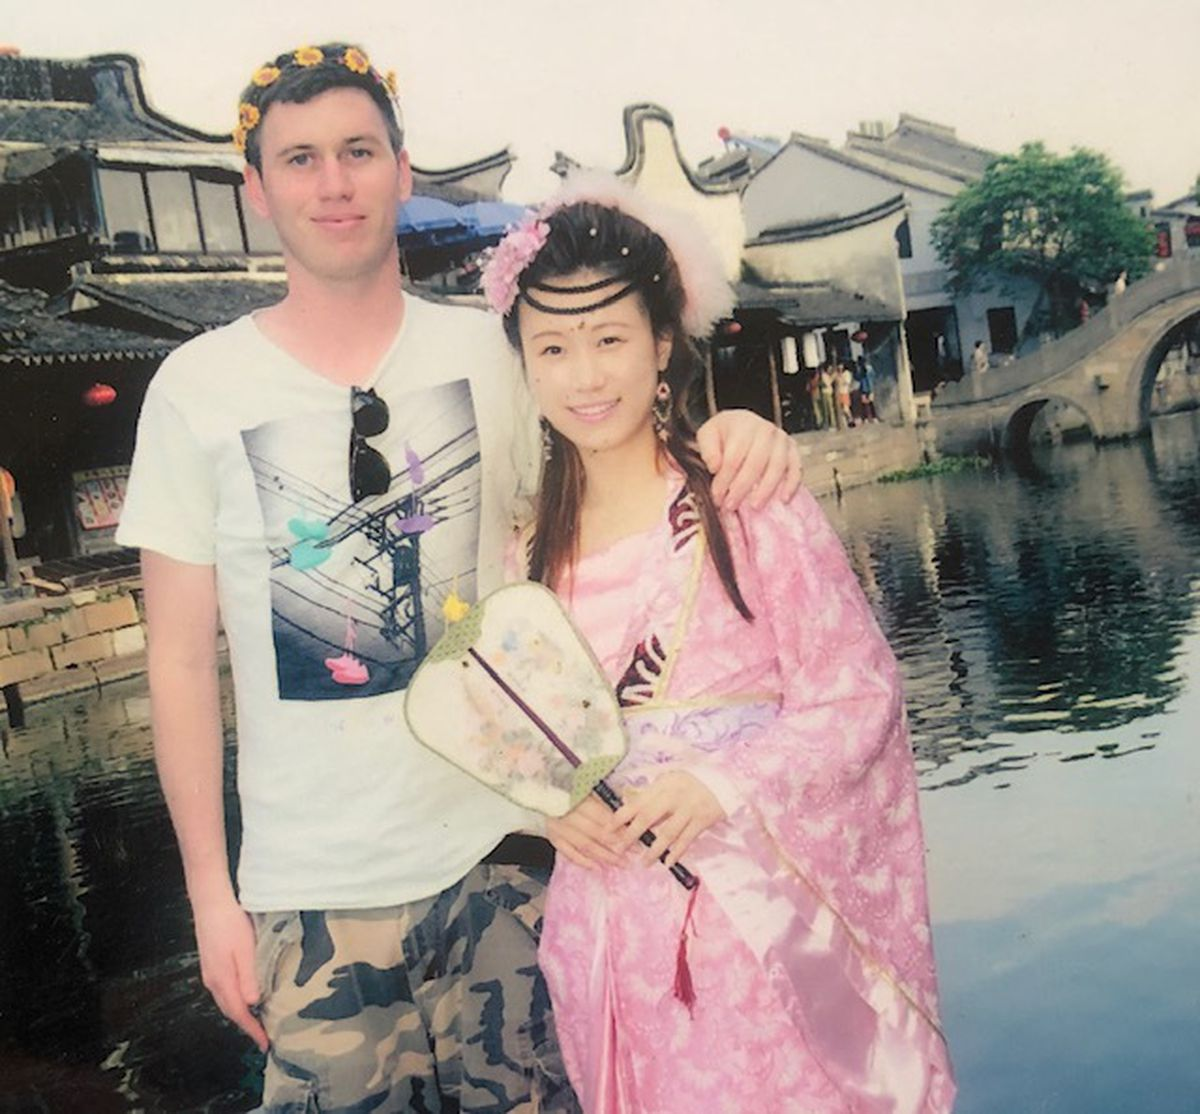 Mia and Robert by East Lake in Wuhan, the biggest urban lake in China